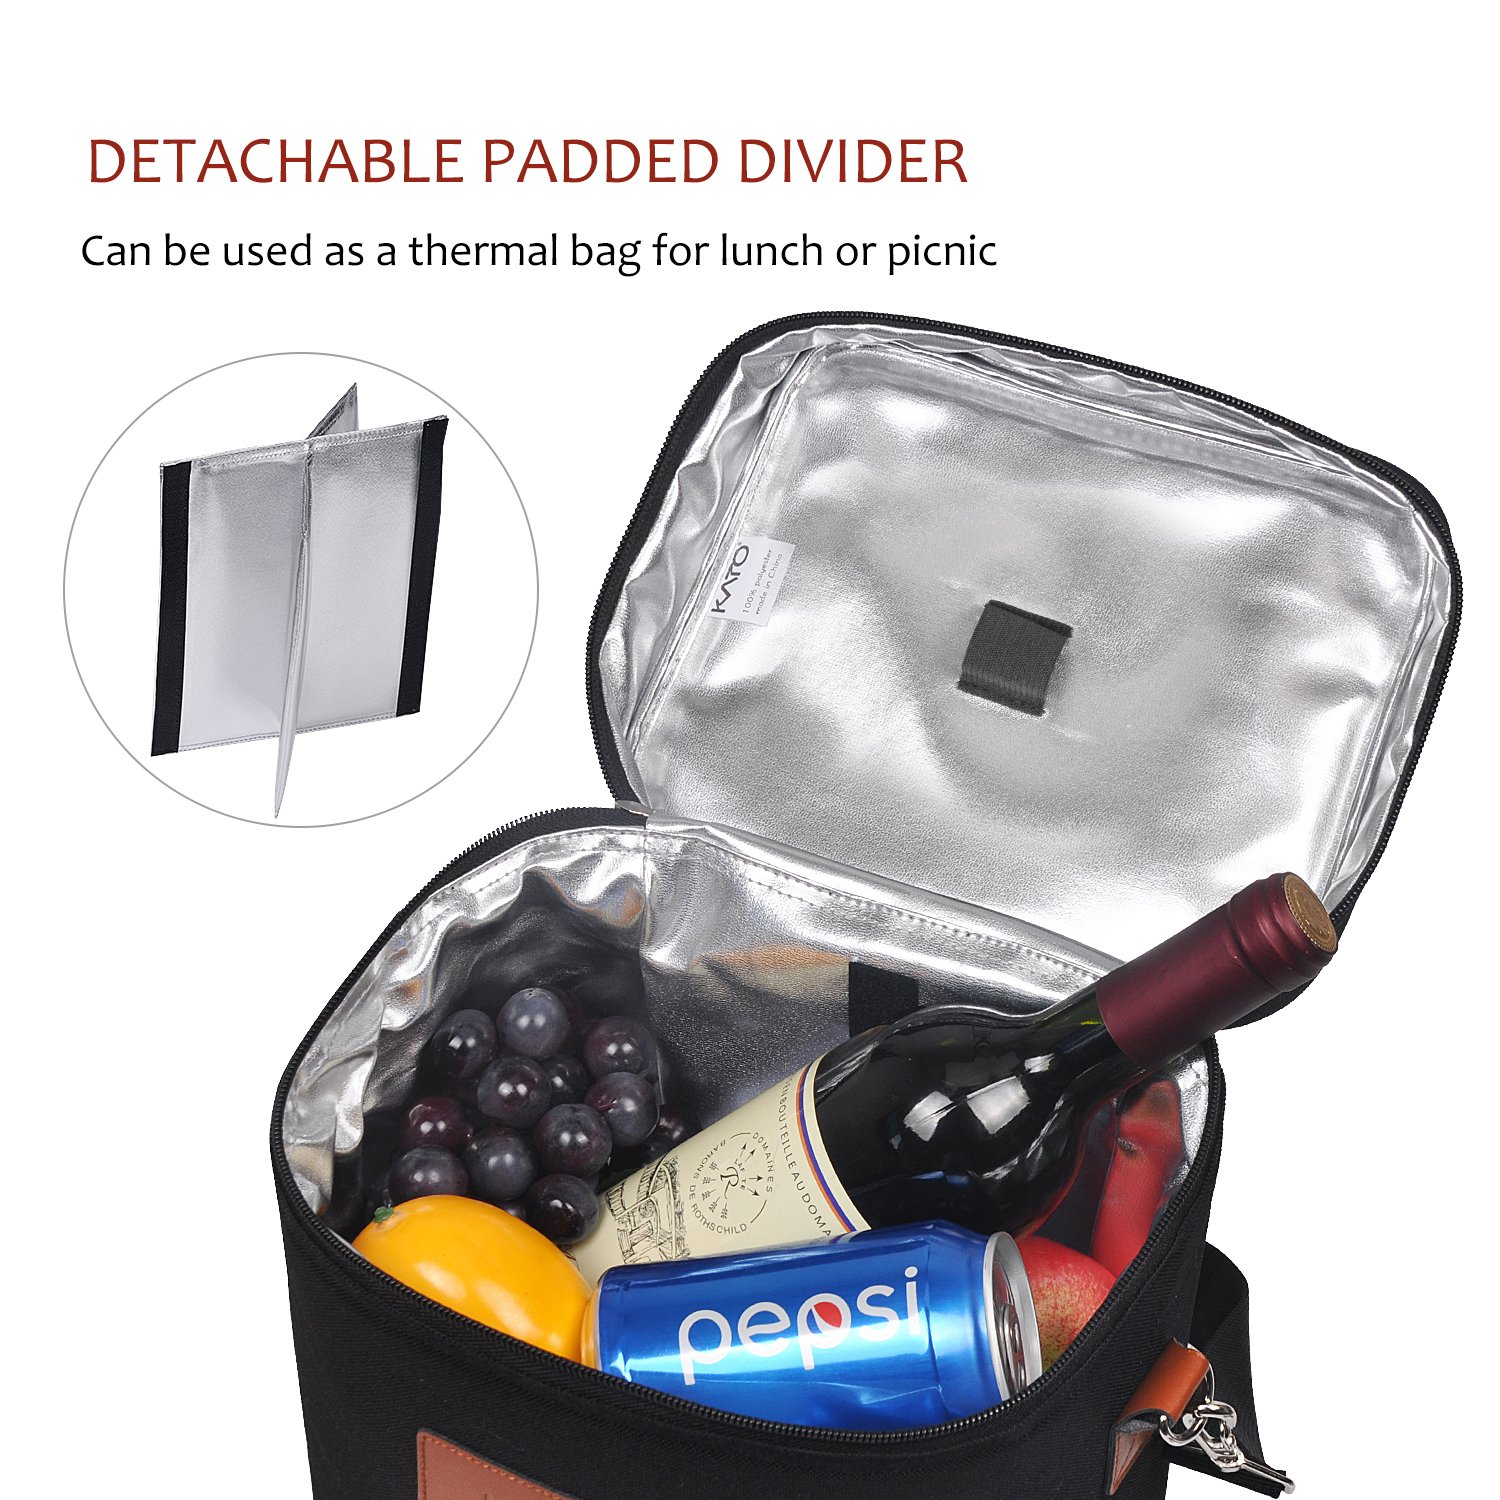 Kato Insulated Wine Carrier Bag - 4 Bottle Travel Padded Wine Carrying CoolerTote with Handle and Shoulder Strap, Great Wine Lover Gift, Black by Kato (Image #3)